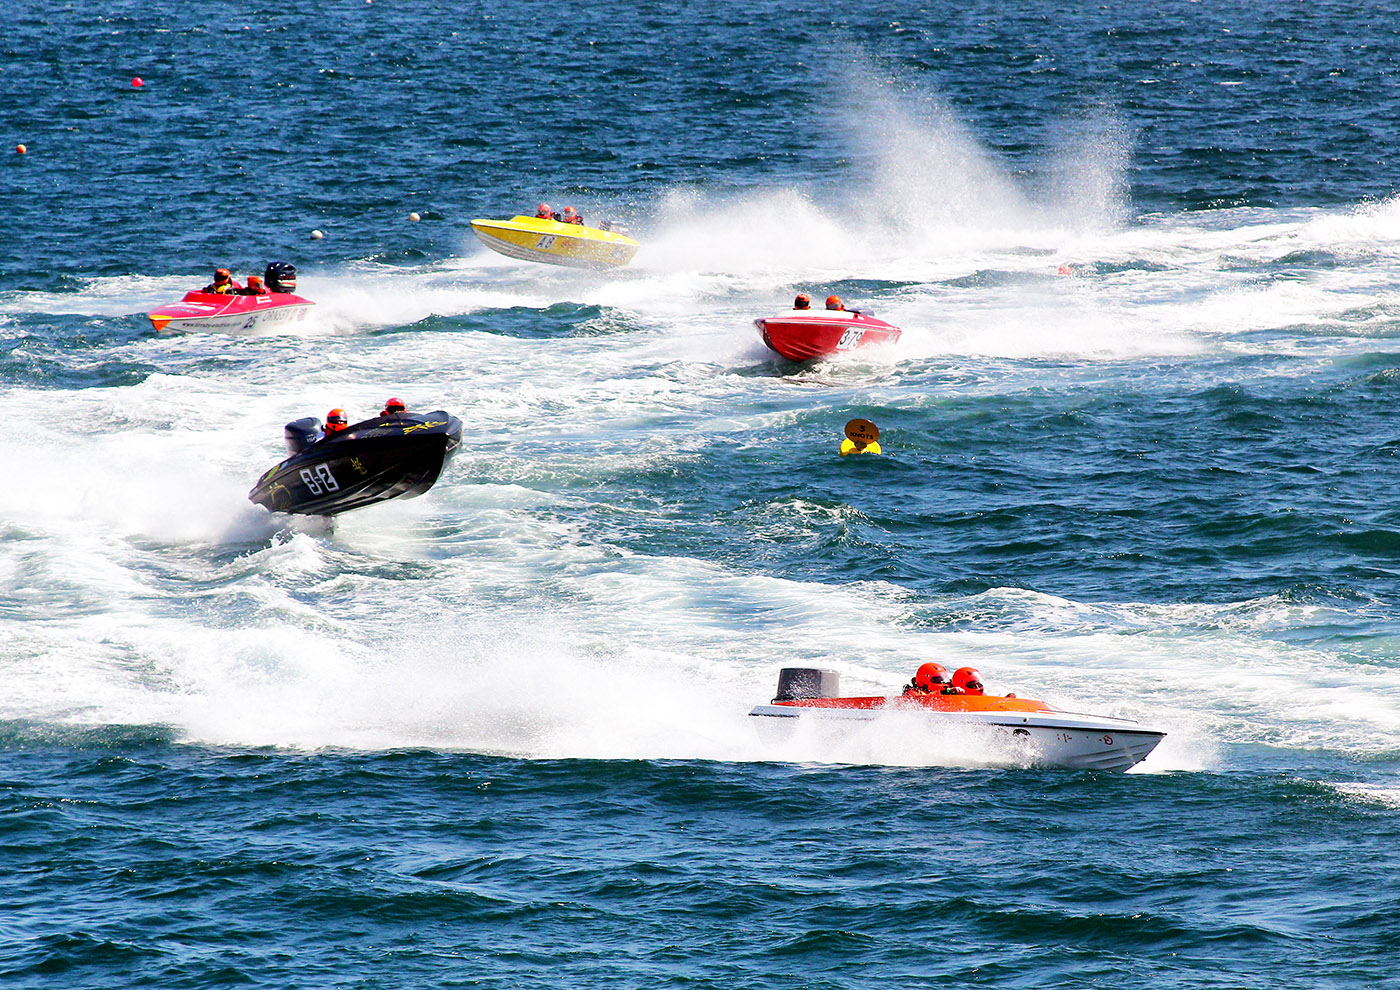 'Power Boat Racing' by Linda Oliver